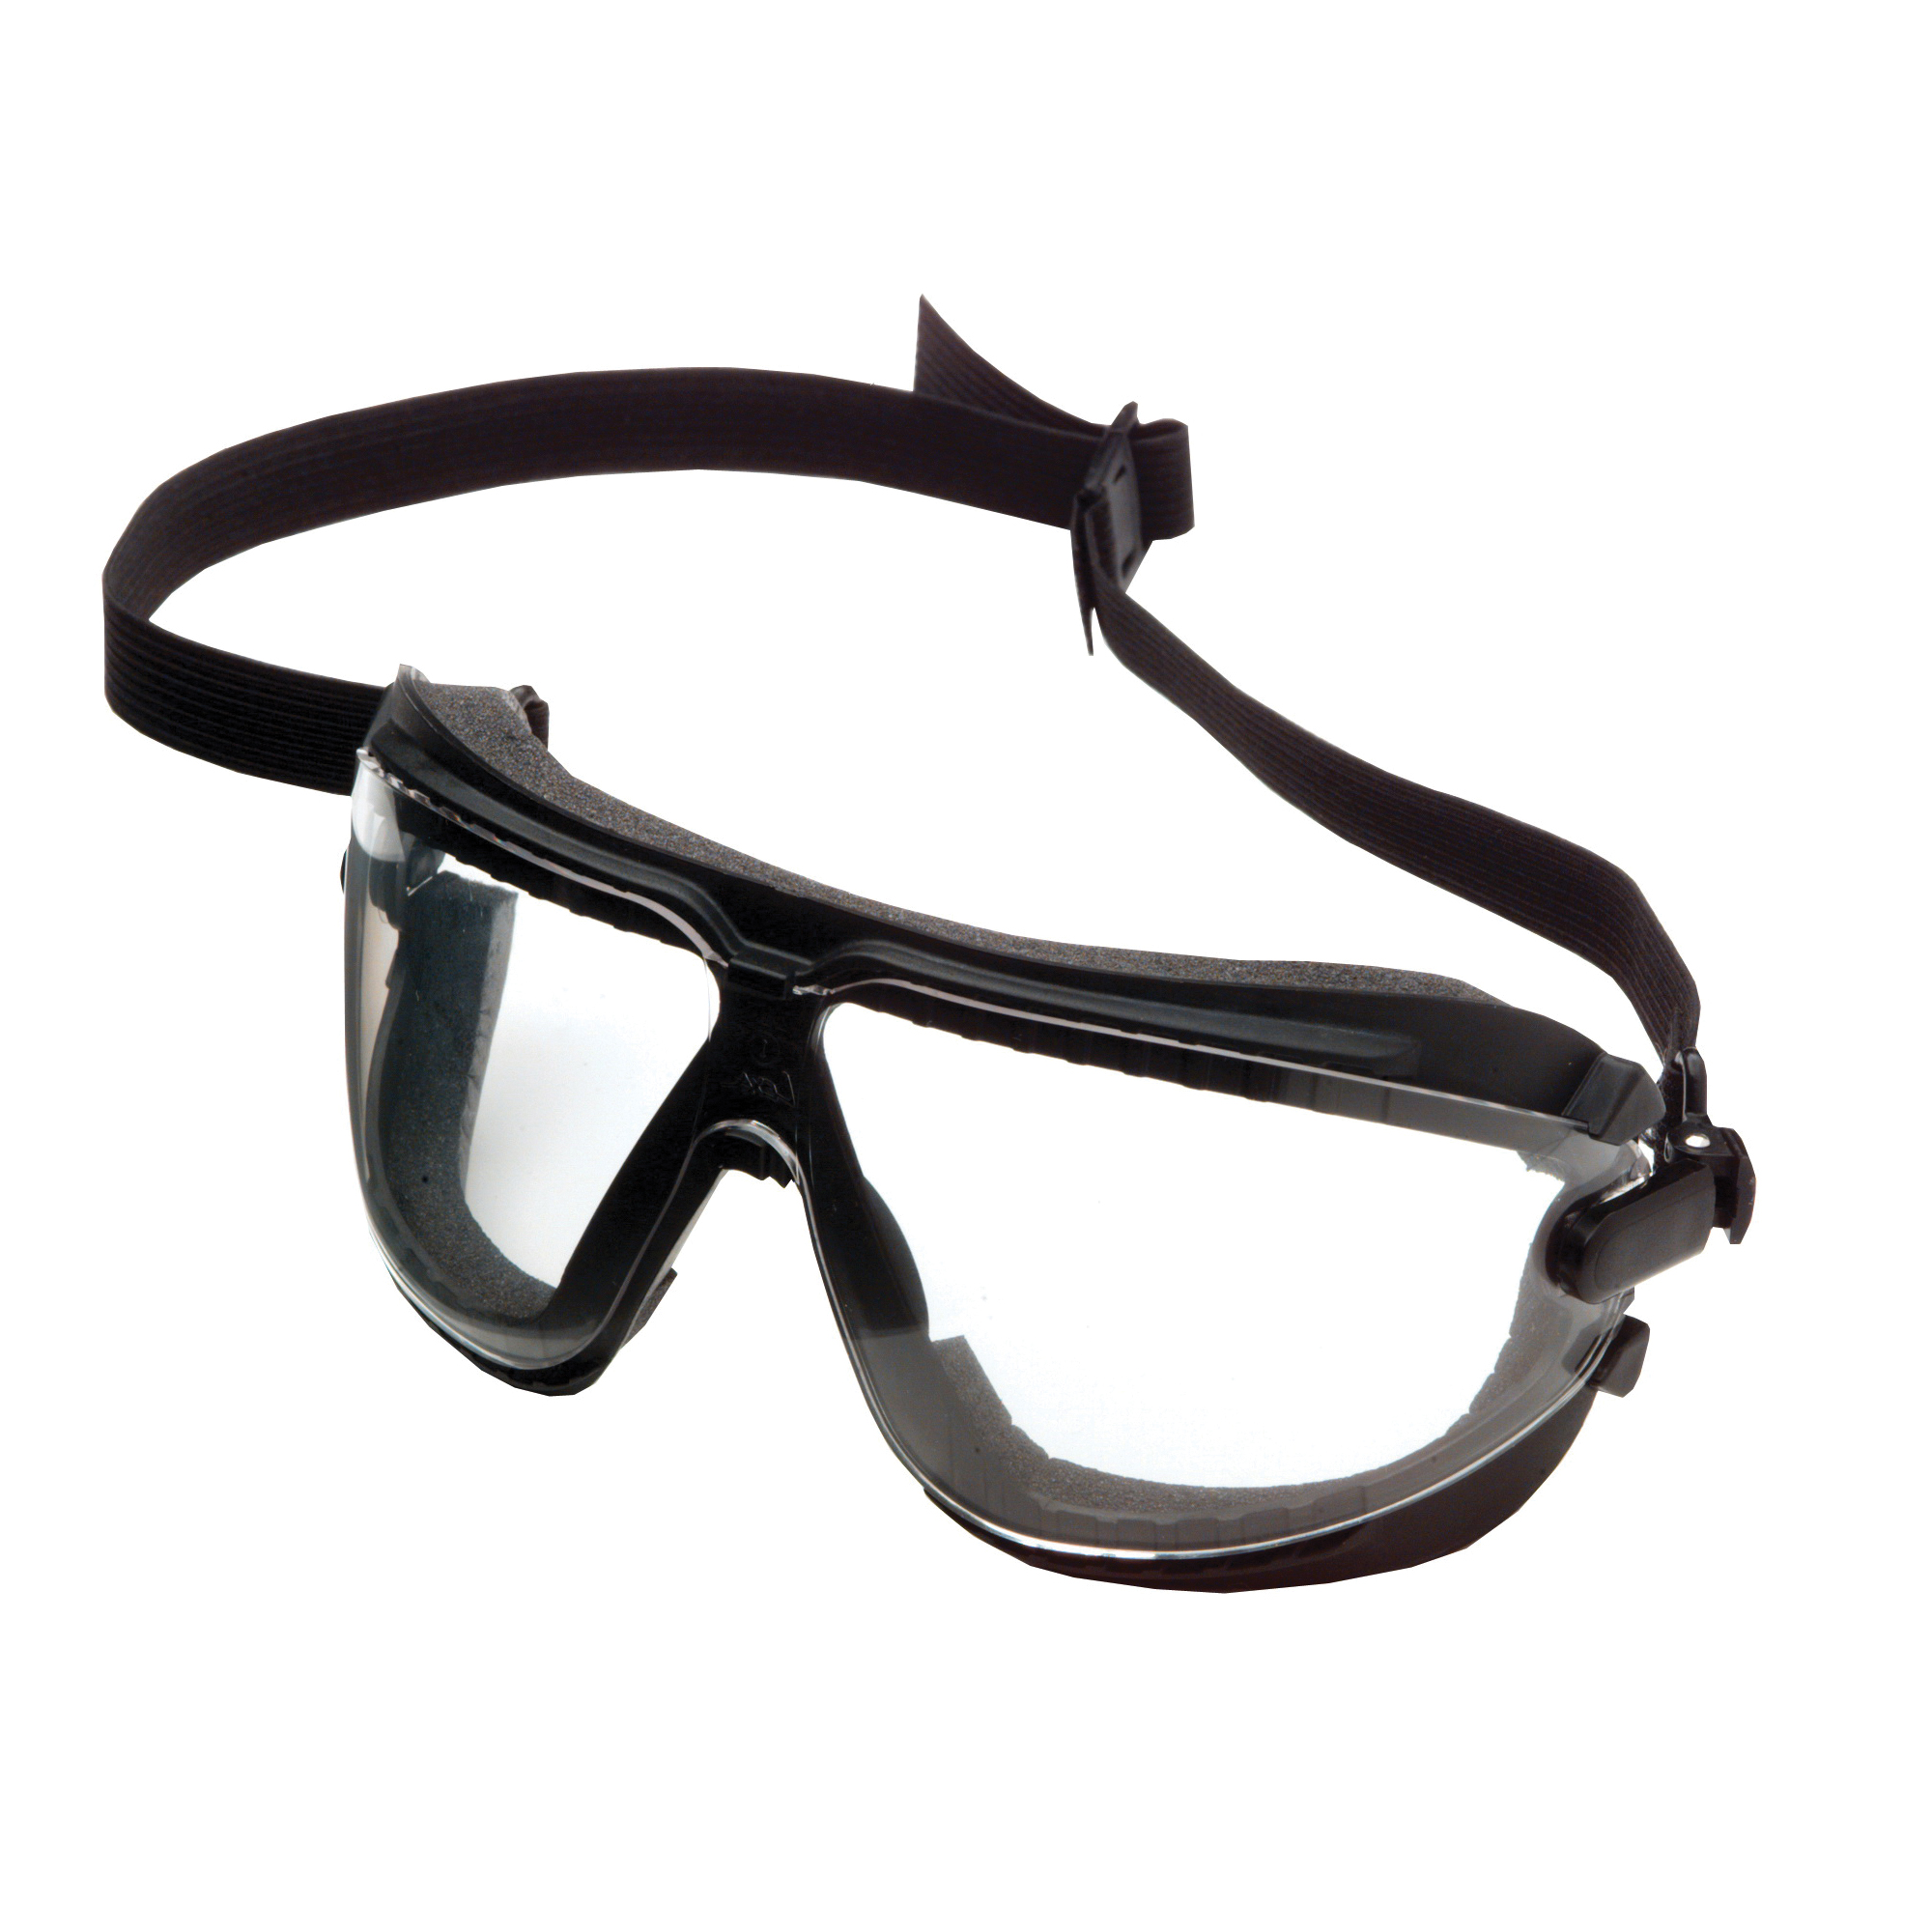 3M™ GoggleGear™ 078371-62331 16618-00000-10 Direct Vent Lightweight Value Safety Goggles, Anti-Fog/Anti-Scratch Clear Polycarbonate Lens, 99.9% % UV Protection, Elastic Strap, Specifications Met: ANSI Z87.1-2003, CSA Z94.3-2007